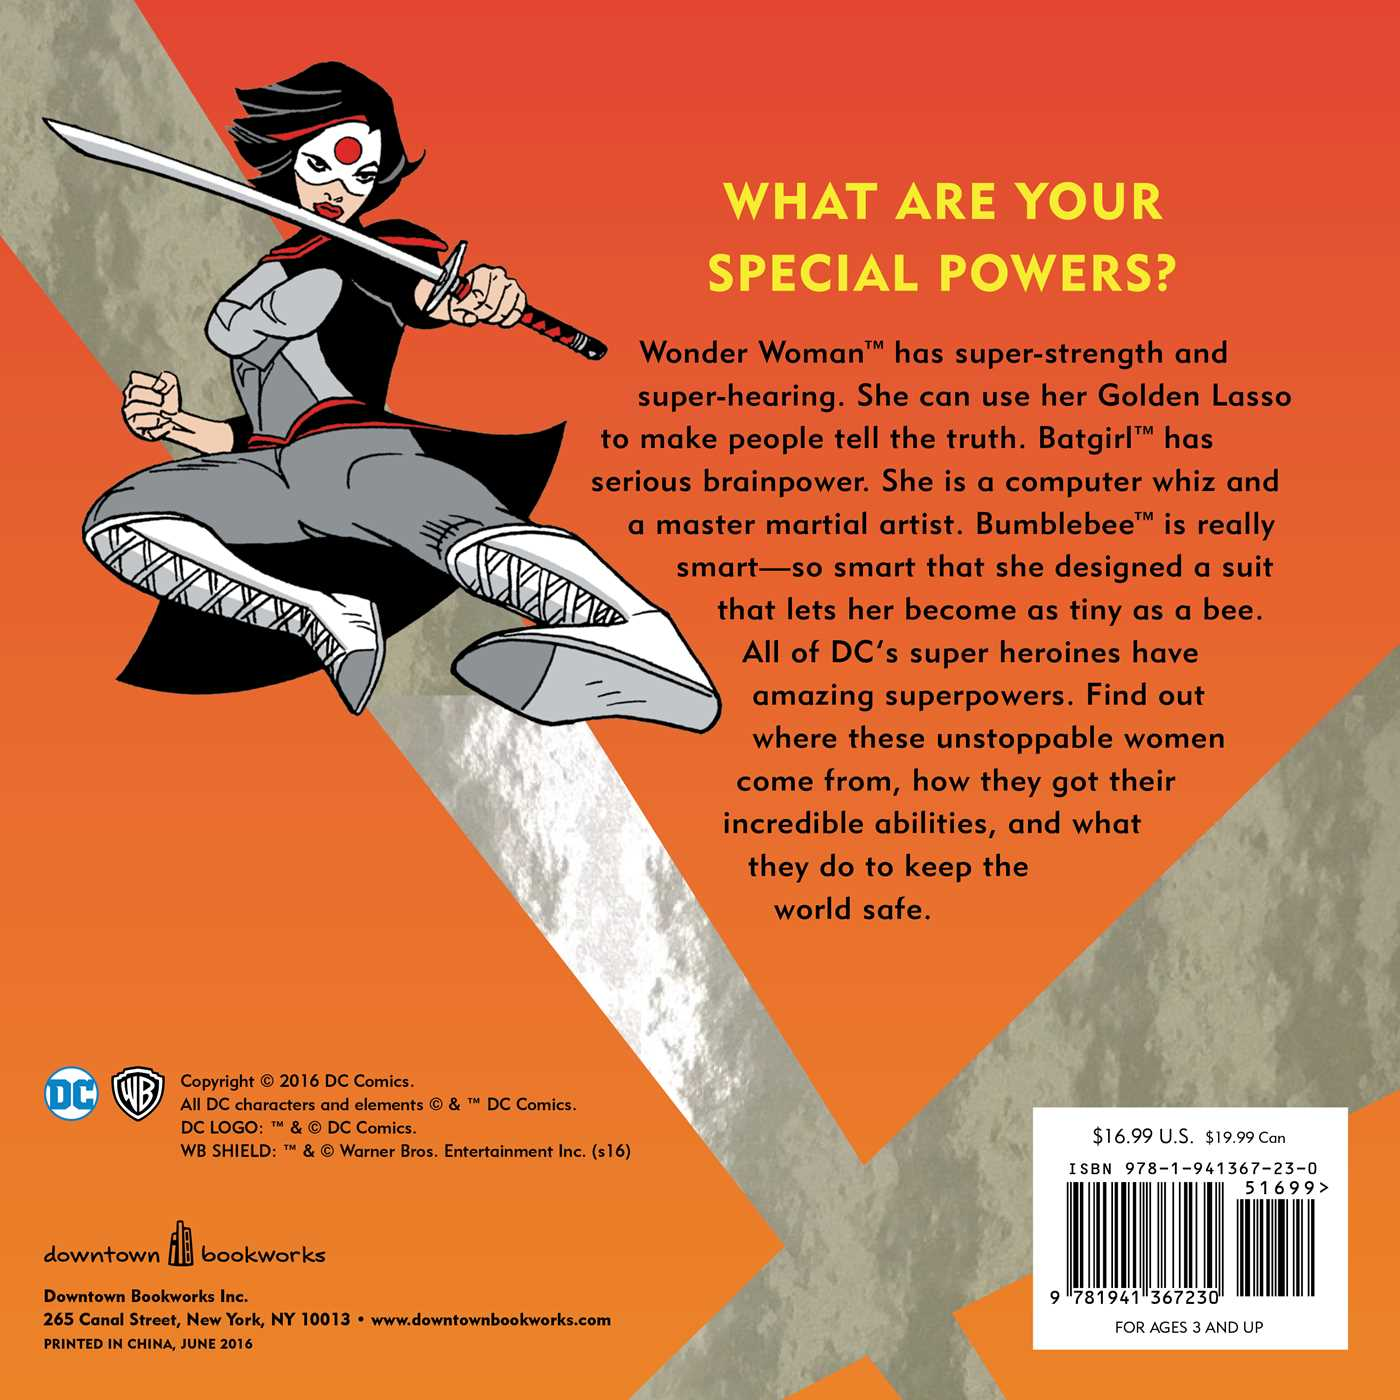 The big book of girl power 9781941367230 hr back